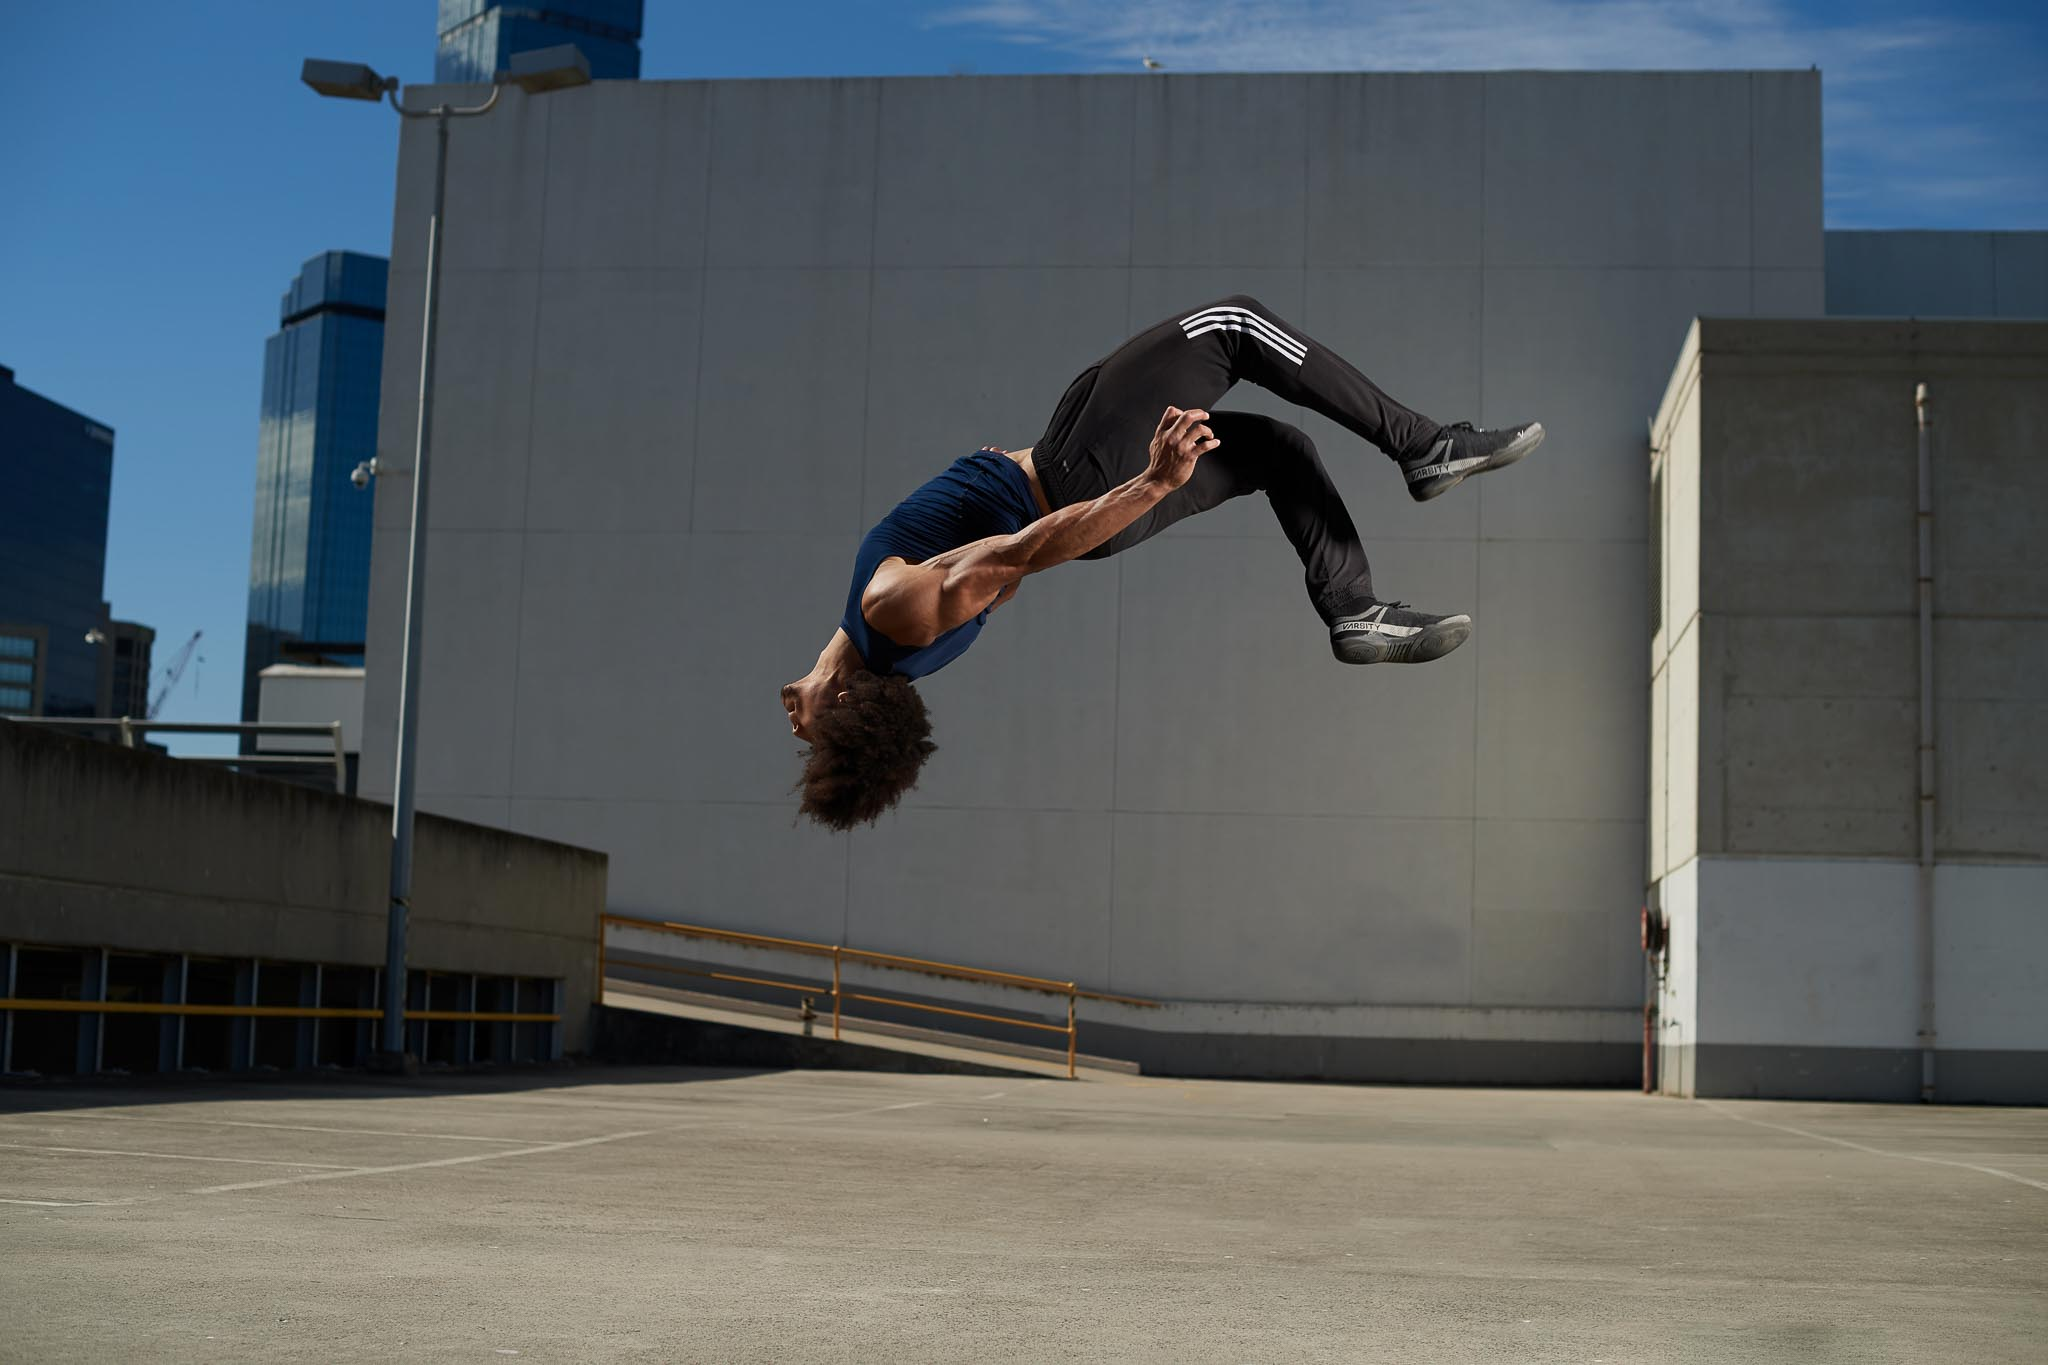 Ossie flying through the air doing a backflip on Melbourne downtown rooftop carpark